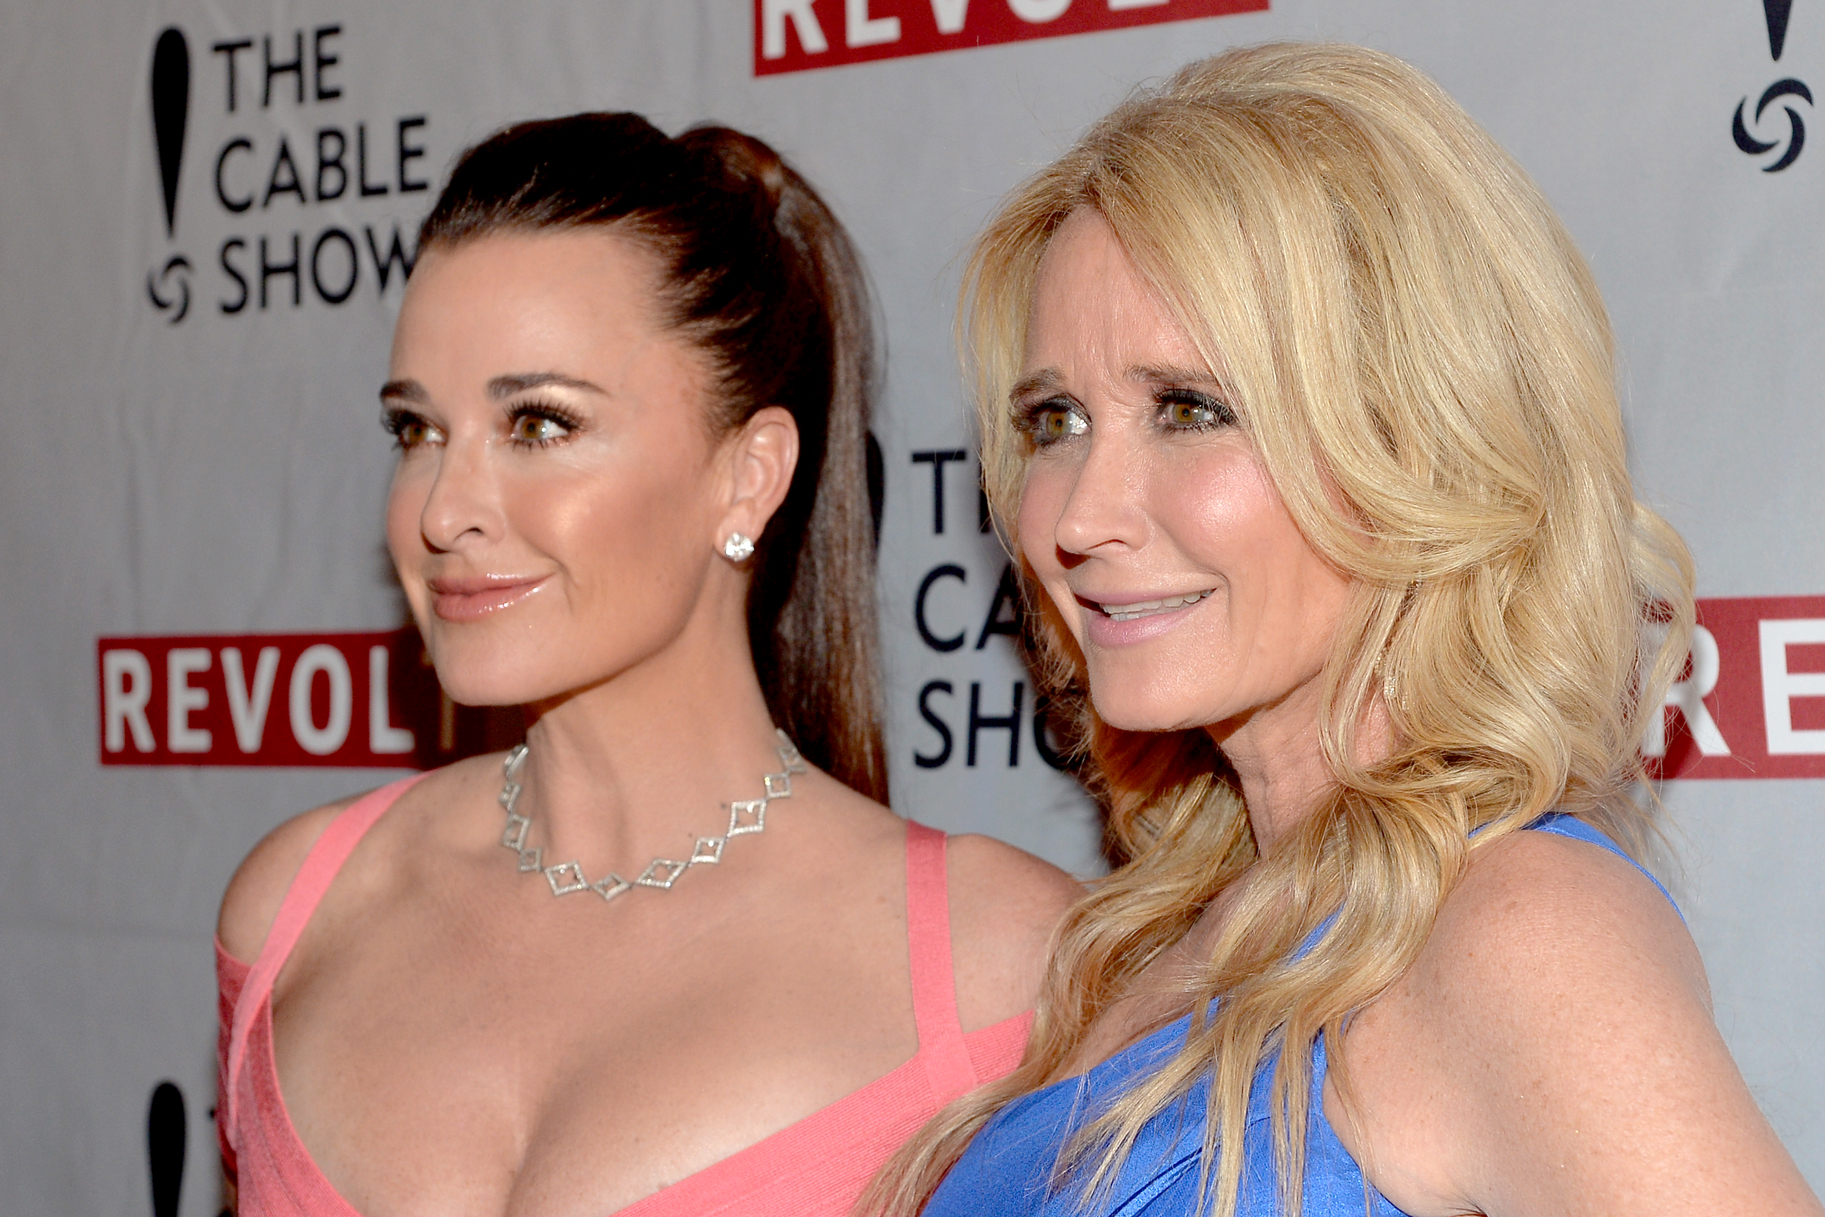 1825x1217 - Kyle Richards Wallpapers 6